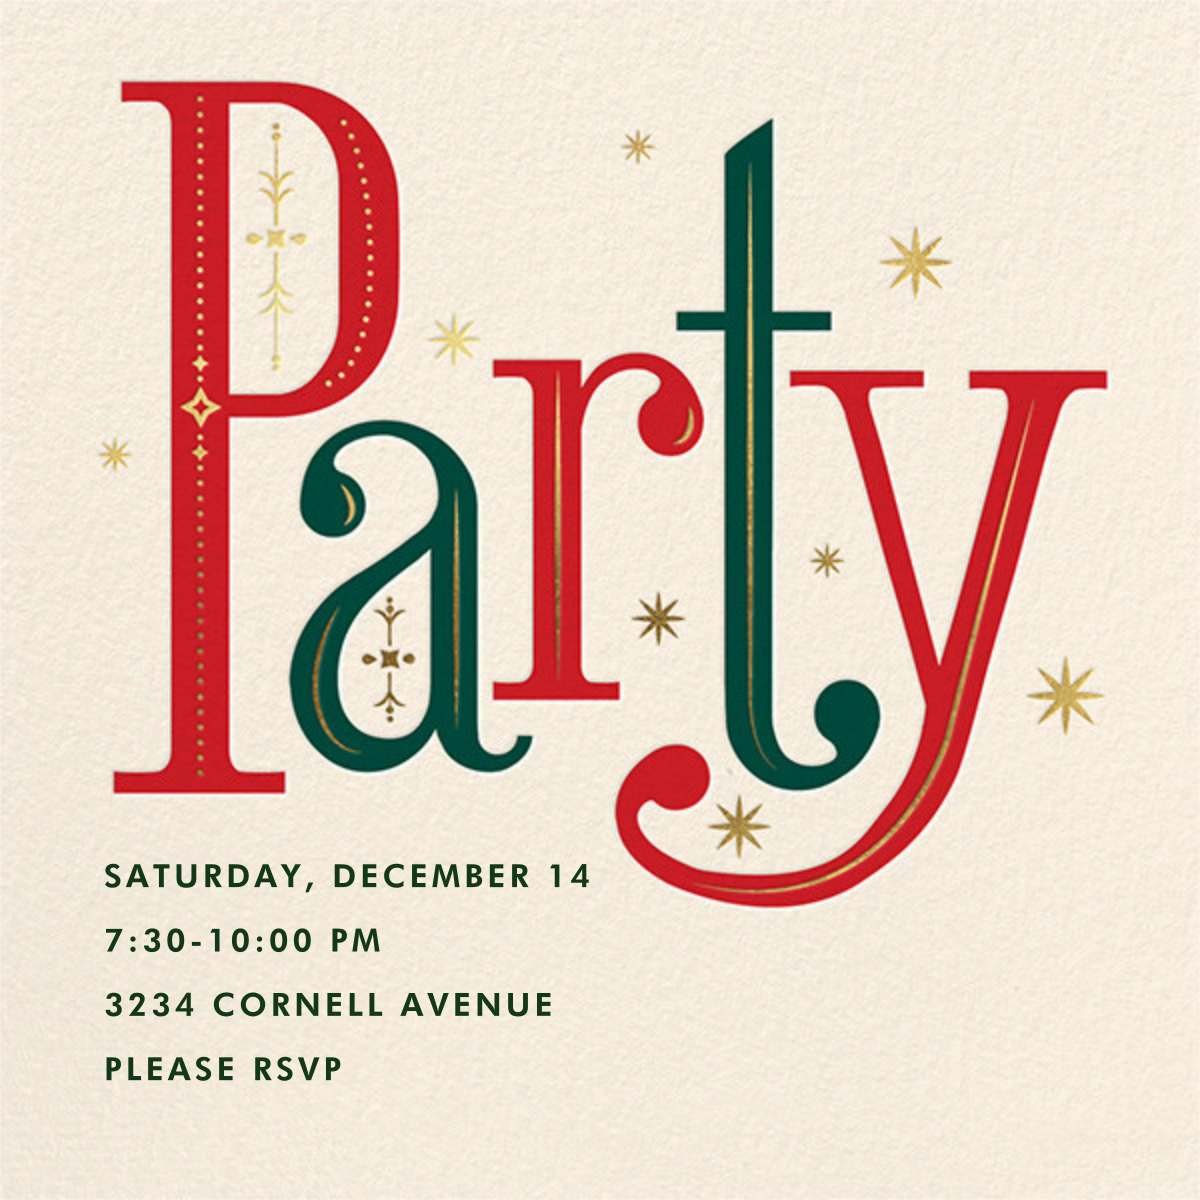 Nordic and Nice - Cheree Berry - Holiday party invitations